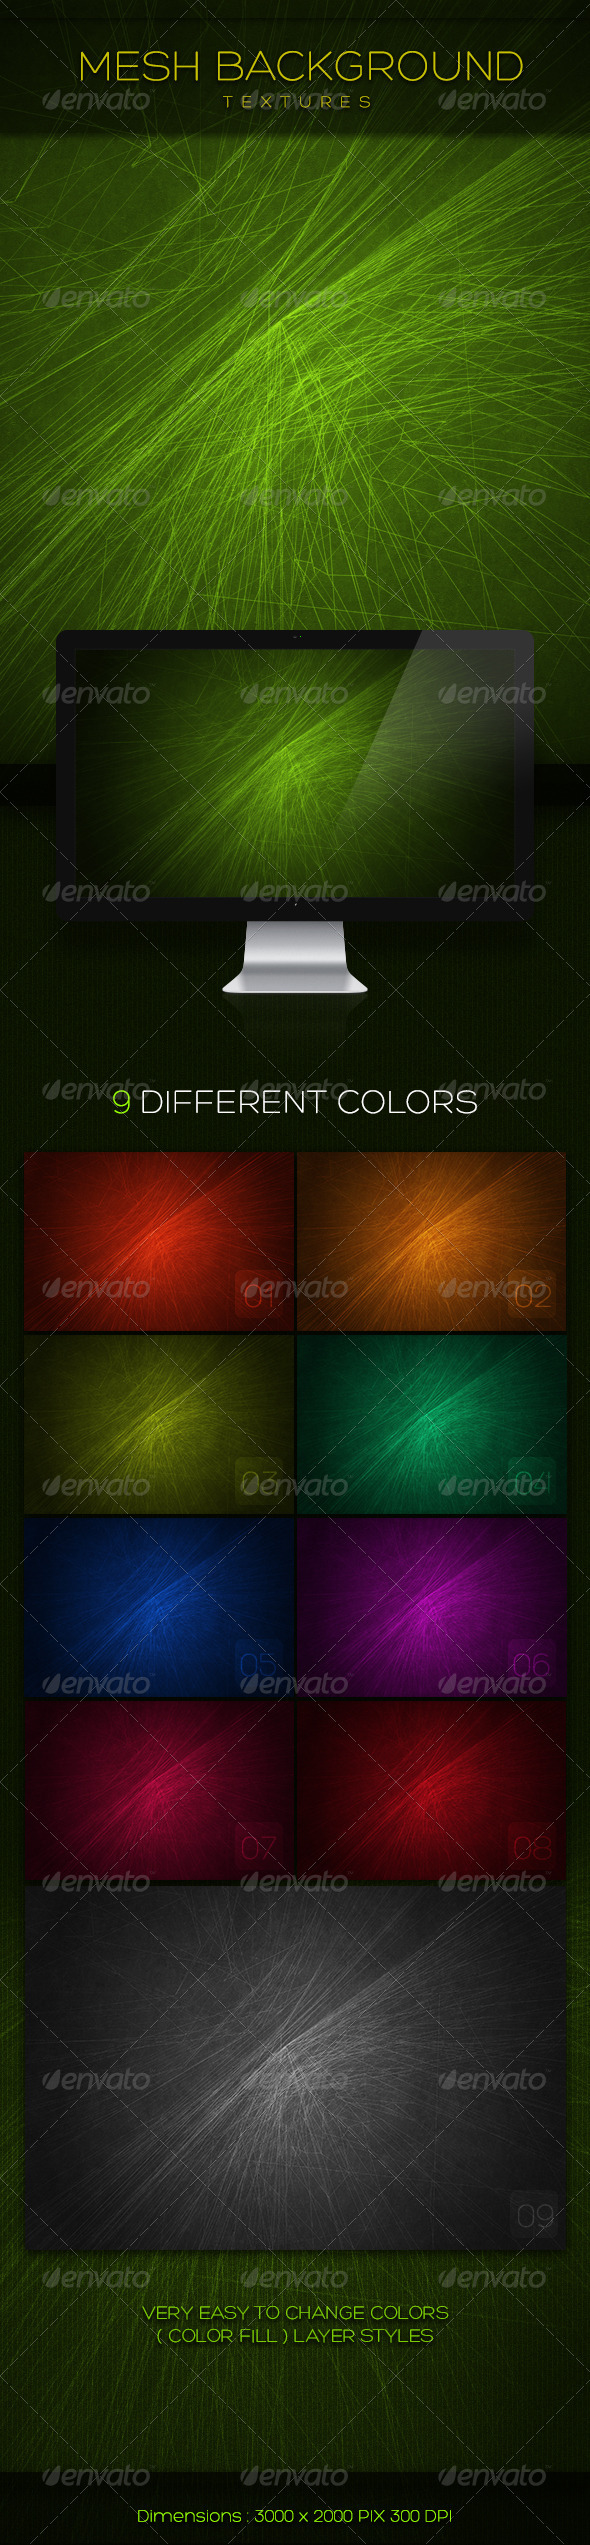 Mesh Background Textures - Abstract Backgrounds